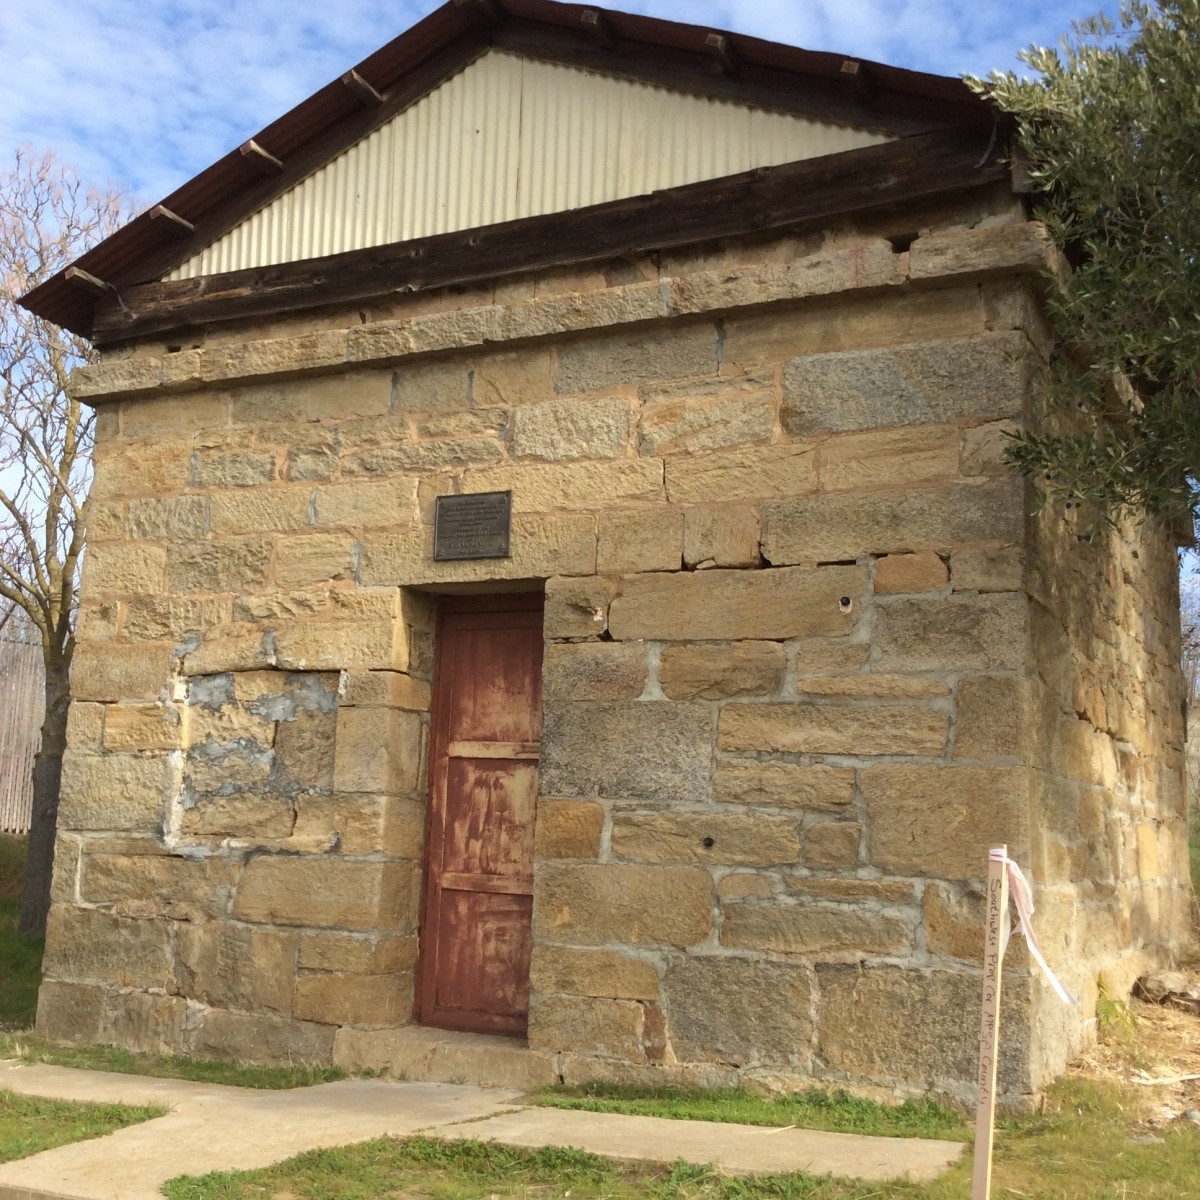 The old jail in Hornitos. At some point it was decided that it didn't really need a front window. There are six-inch windows on two sides.